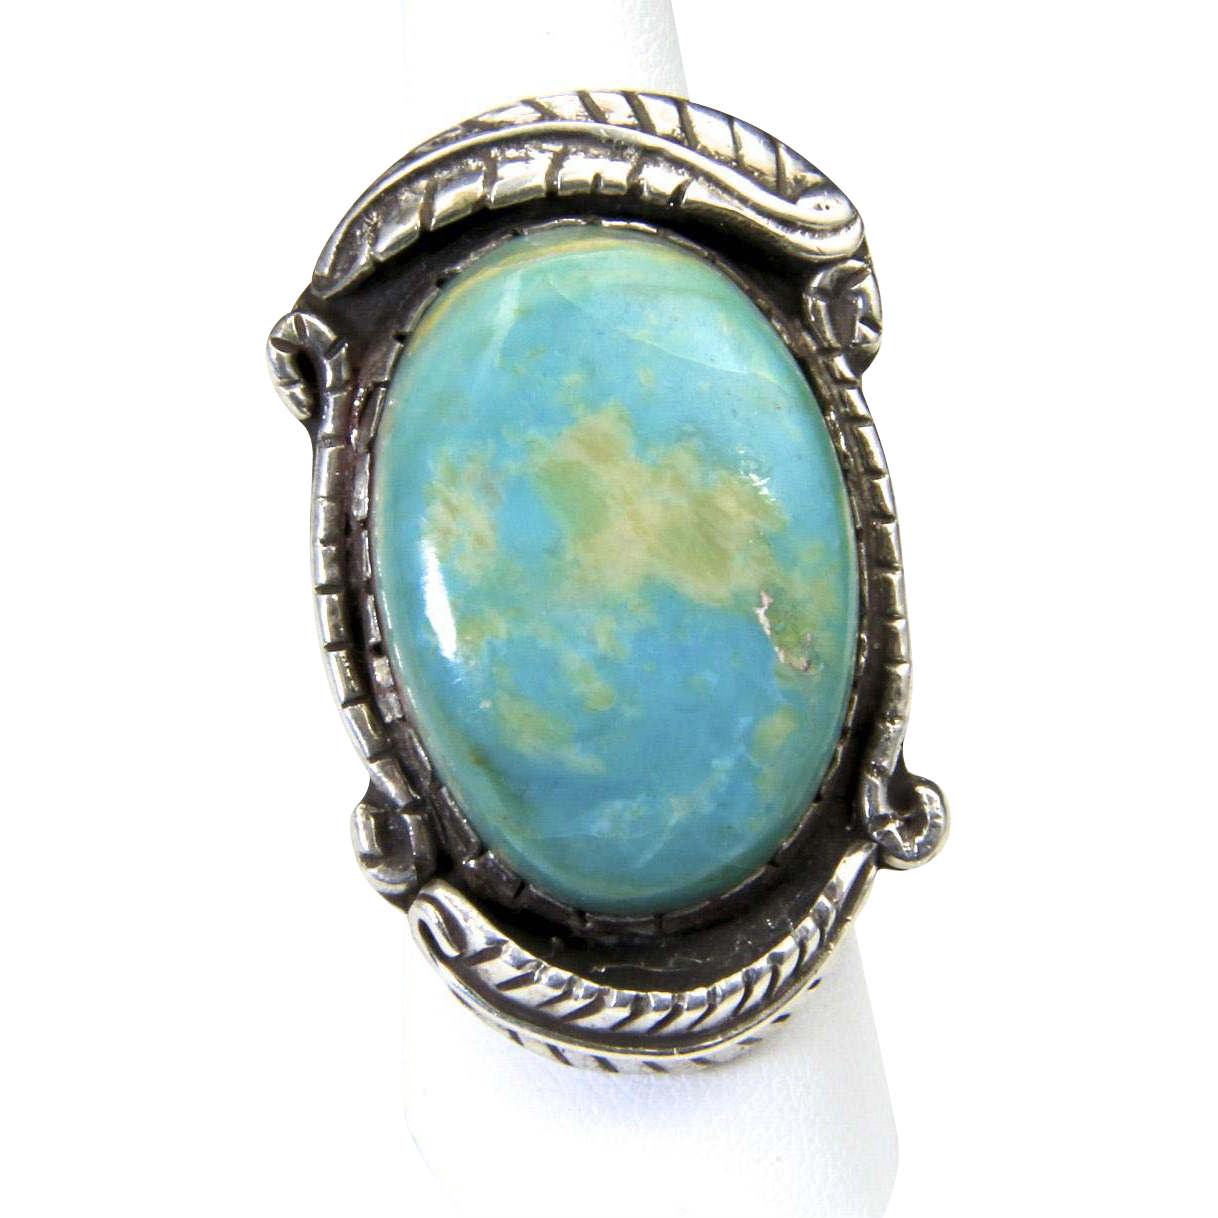 Vintage Huge Turquoise Stone & Sterling Silver Ring Signed Southwestern Sz 8